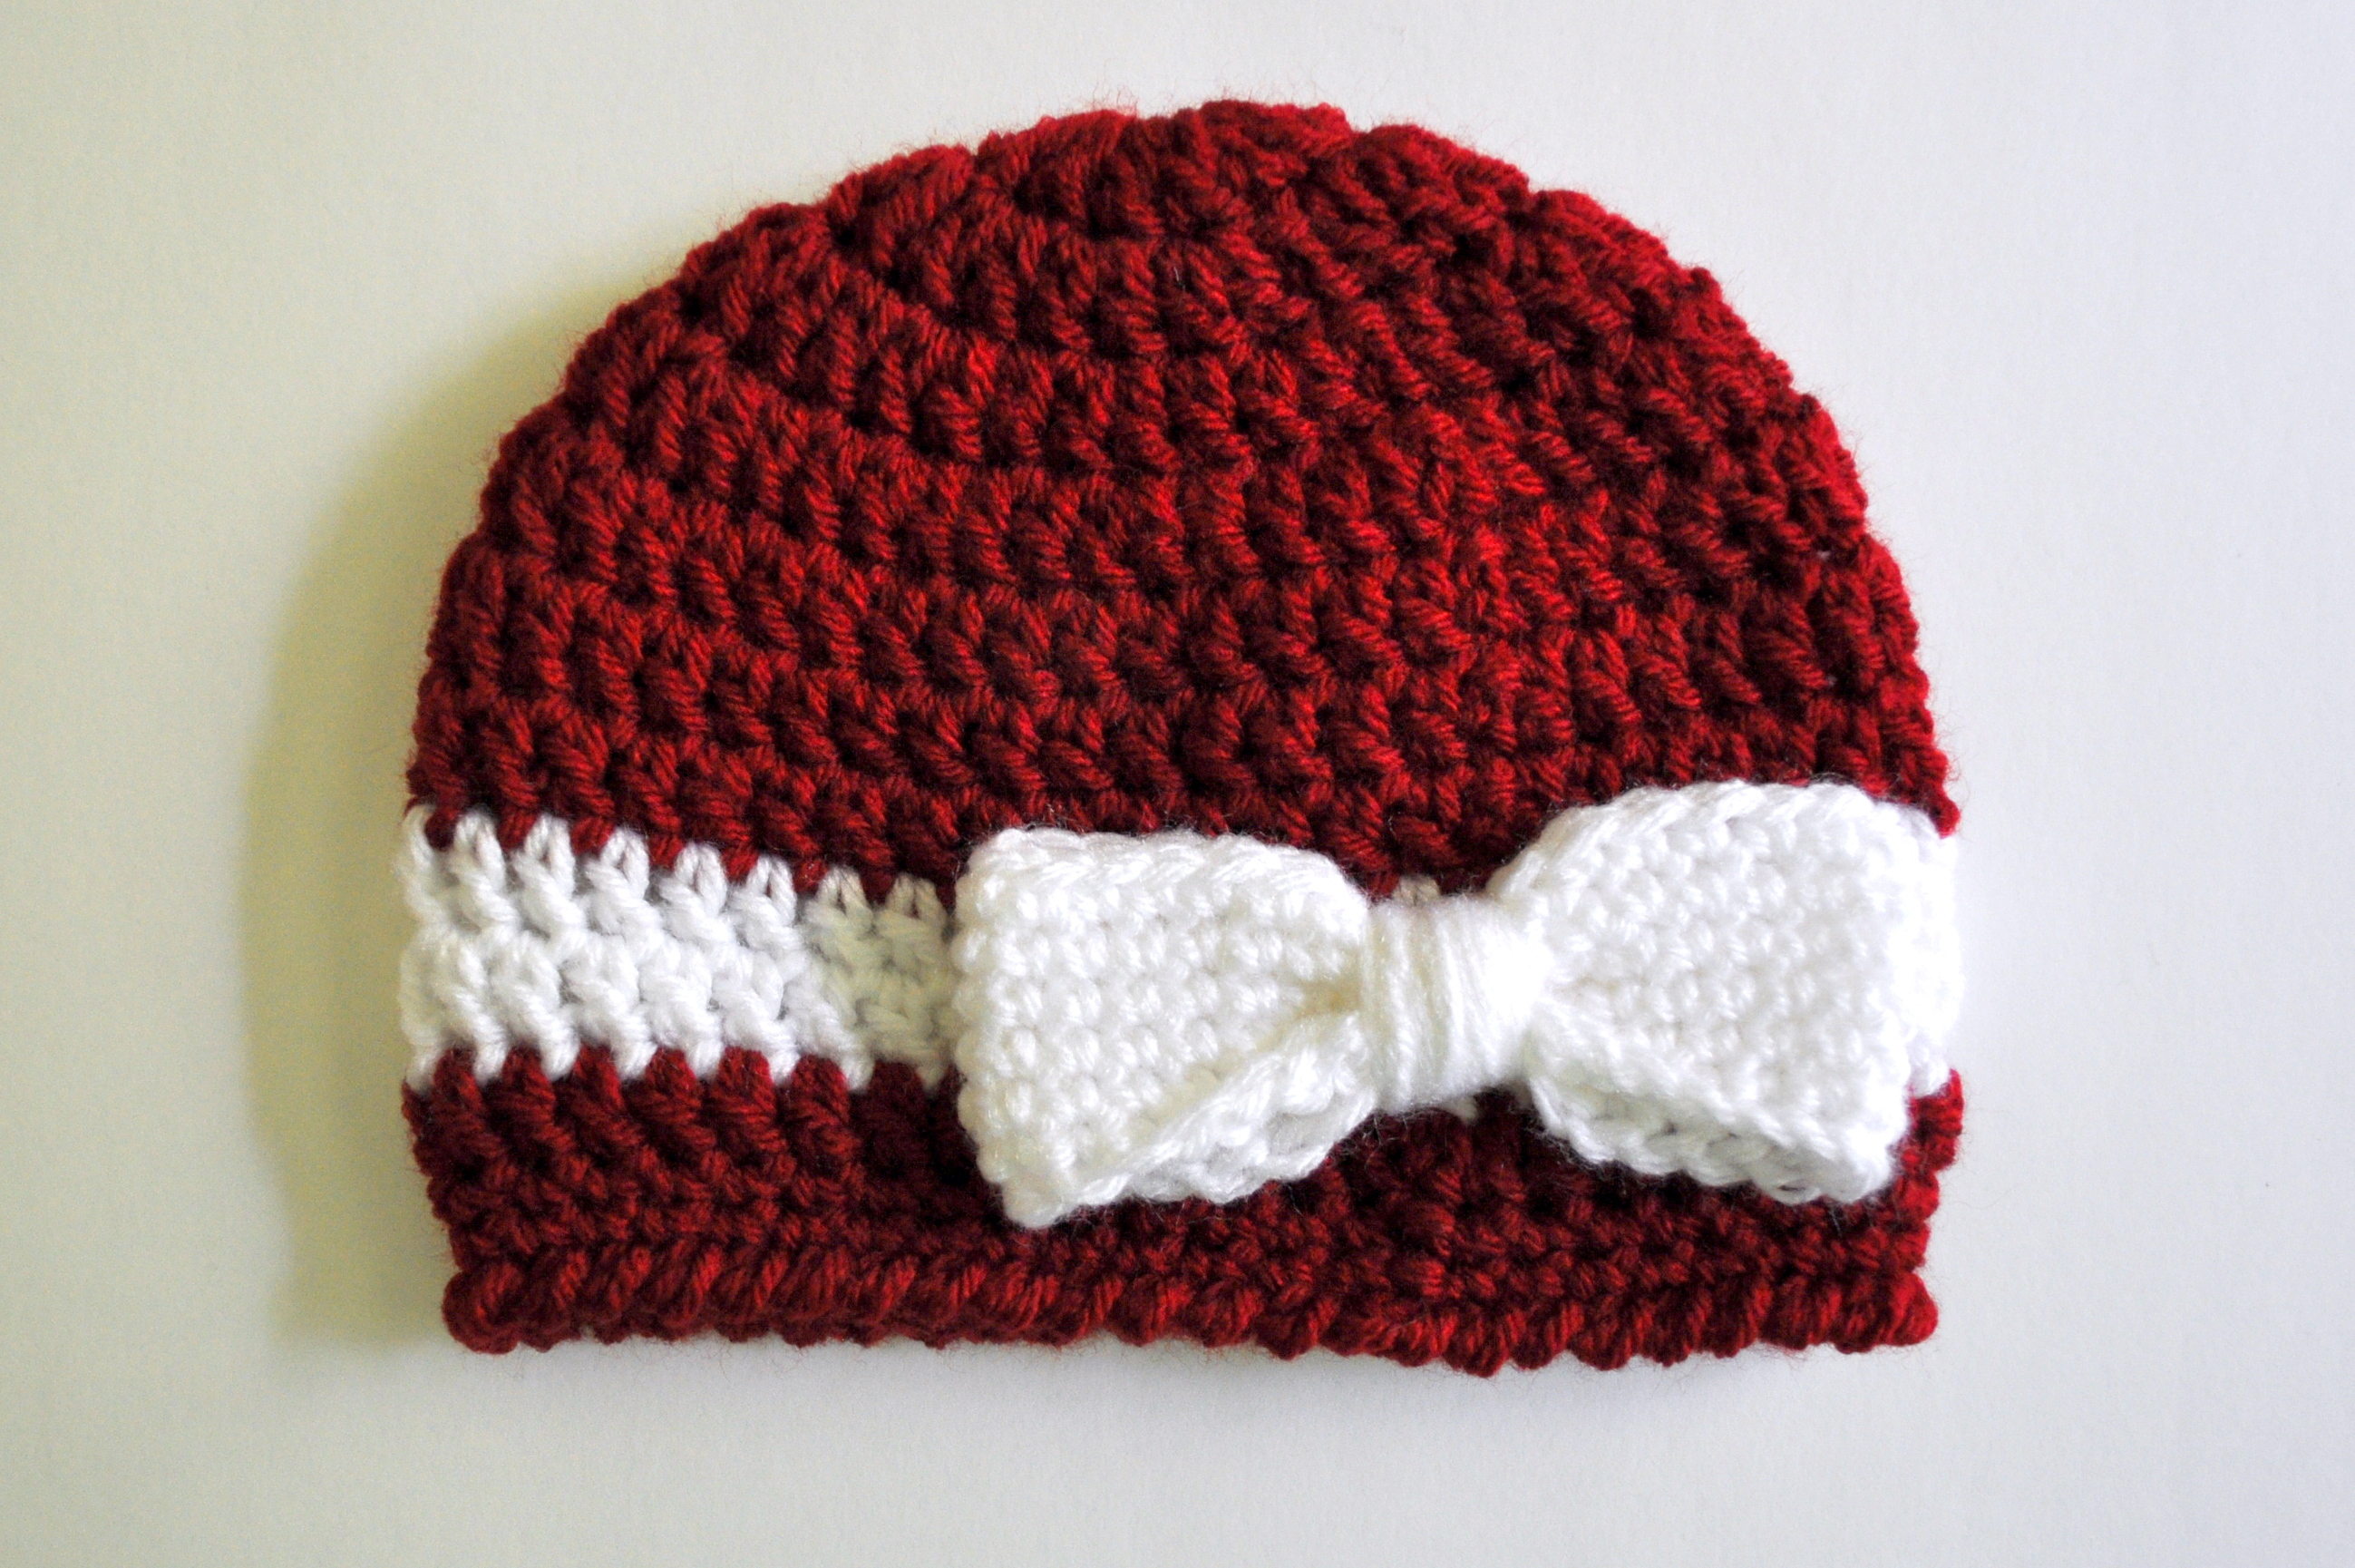 Free Pattern: Crochet Bow and Ribbon Baby Hat Classy Crochet